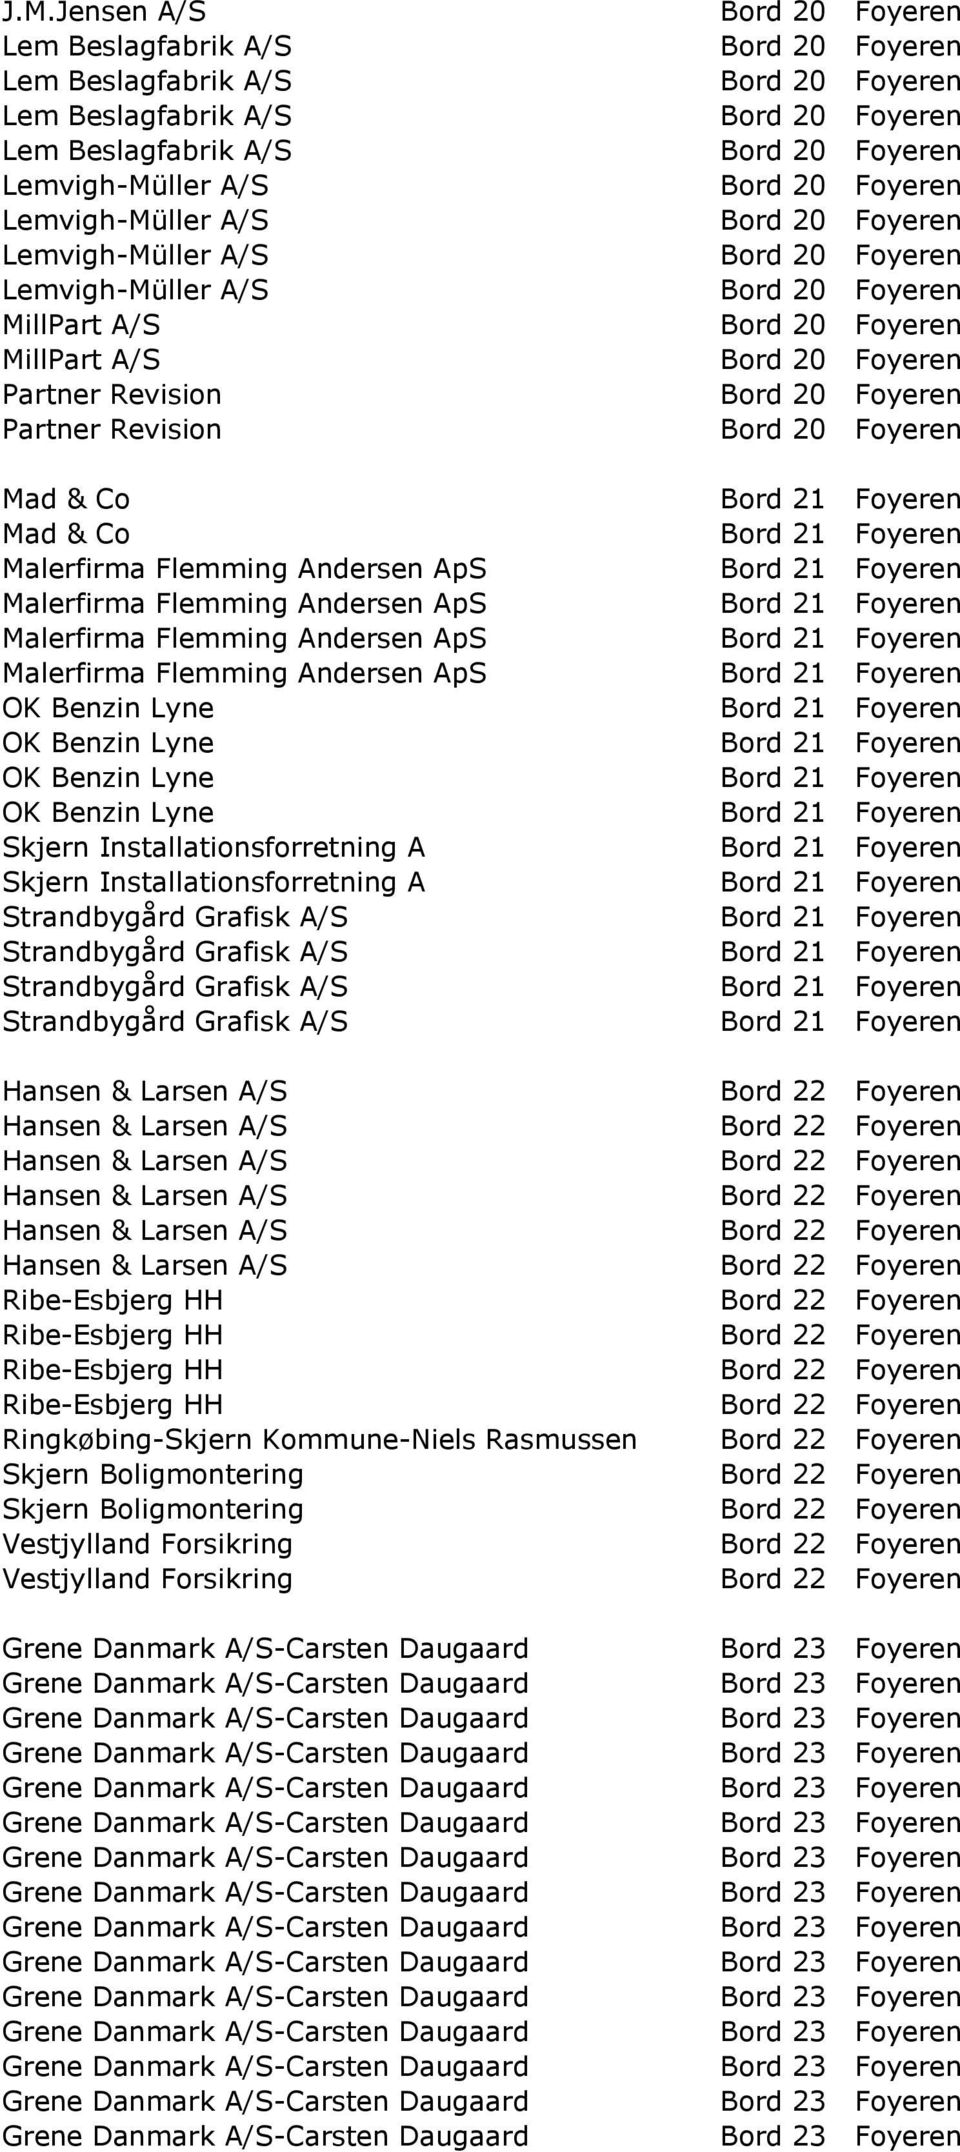 Bord 20 Foyeren Partner Revision Bord 20 Foyeren Mad & Co Bord 21 Foyeren Mad & Co Bord 21 Foyeren Malerfirma Flemming Andersen ApS Bord 21 Foyeren Malerfirma Flemming Andersen ApS Bord 21 Foyeren